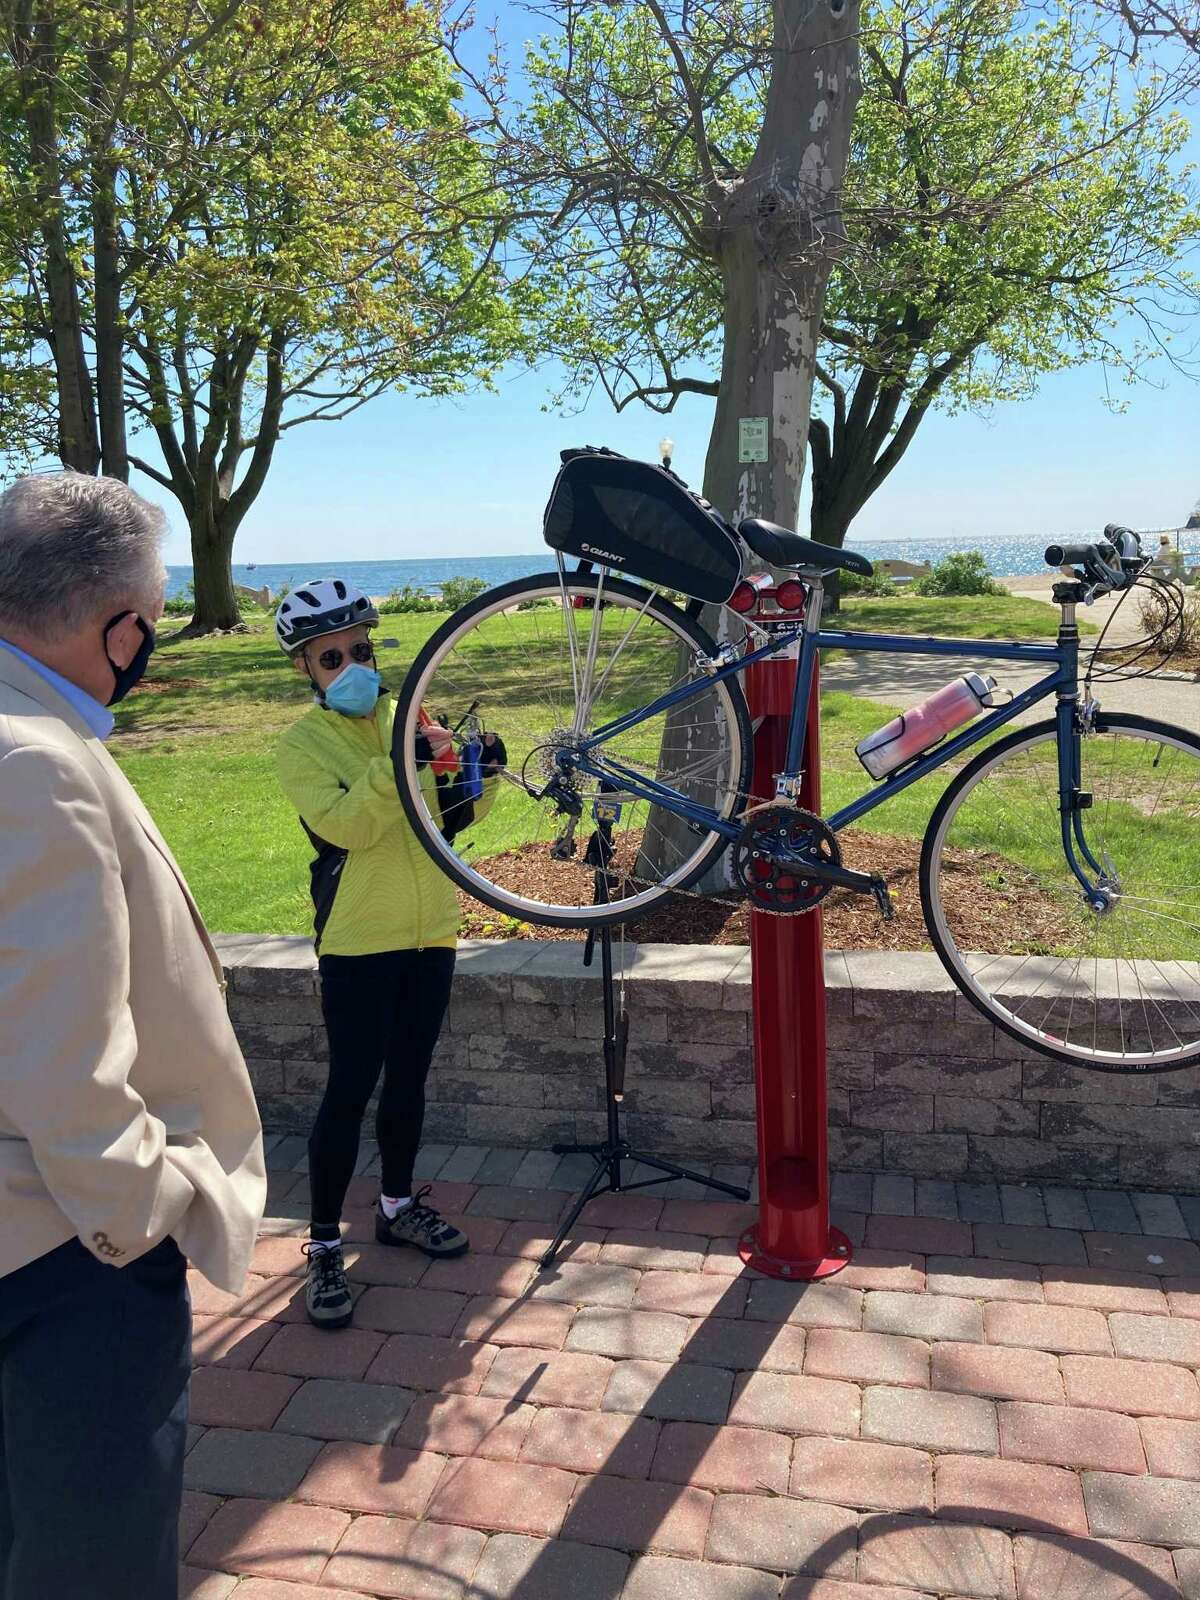 Demonstration on how to use the free bike repair station at Calf Pasture Beach on Friday, May 7.